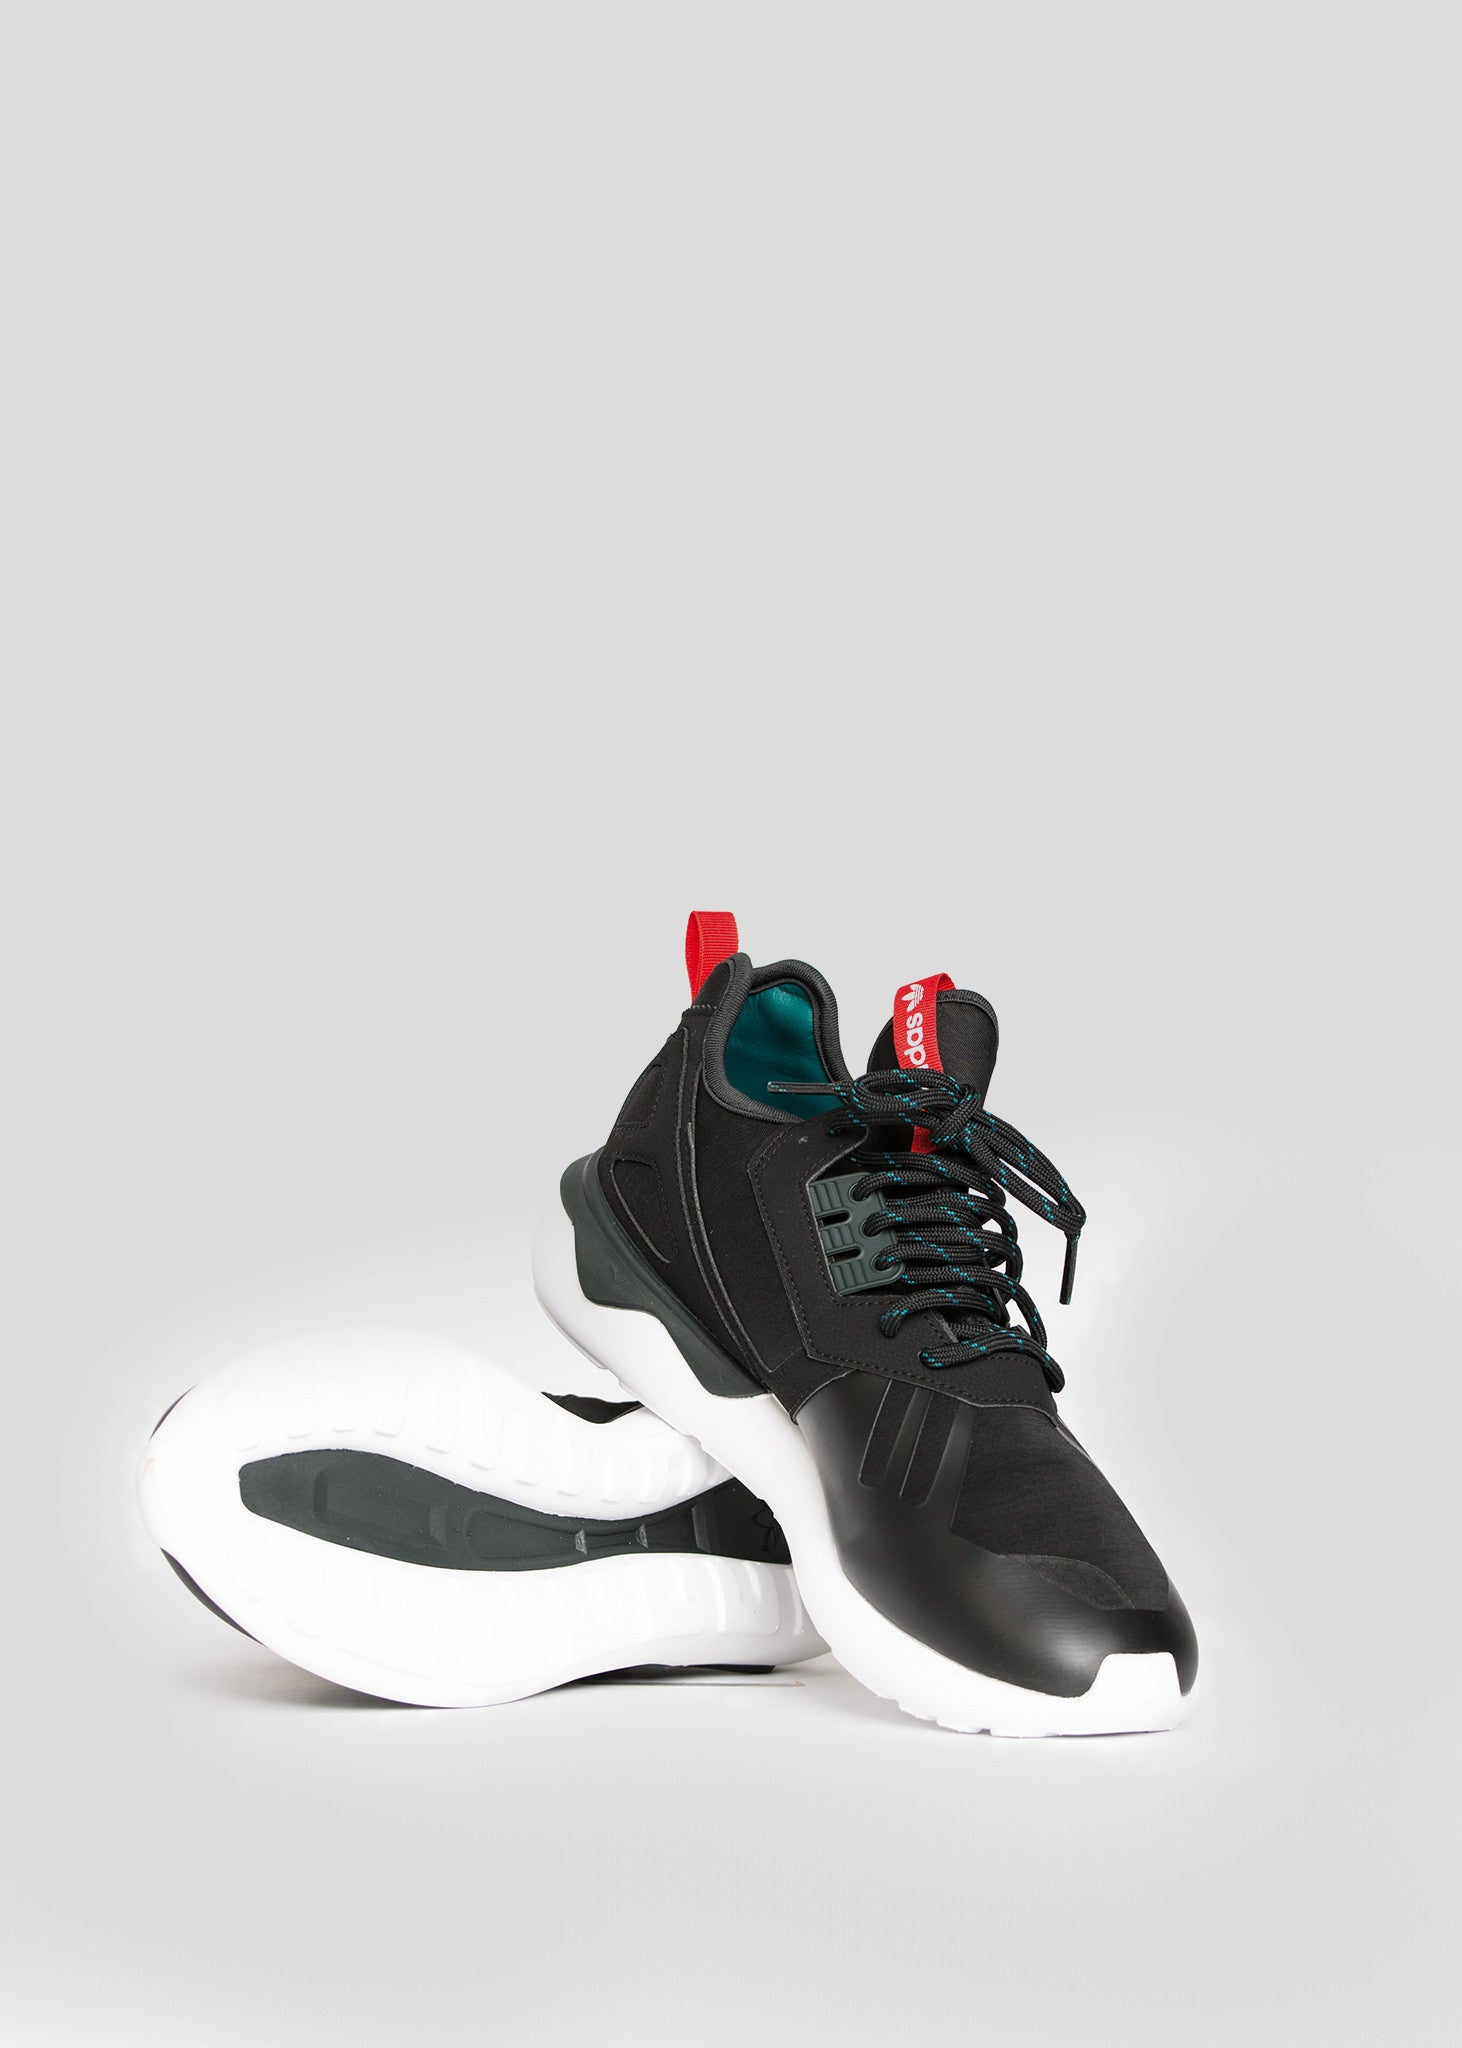 Adidas Tubular Runner (Core Black, White & Silver) End